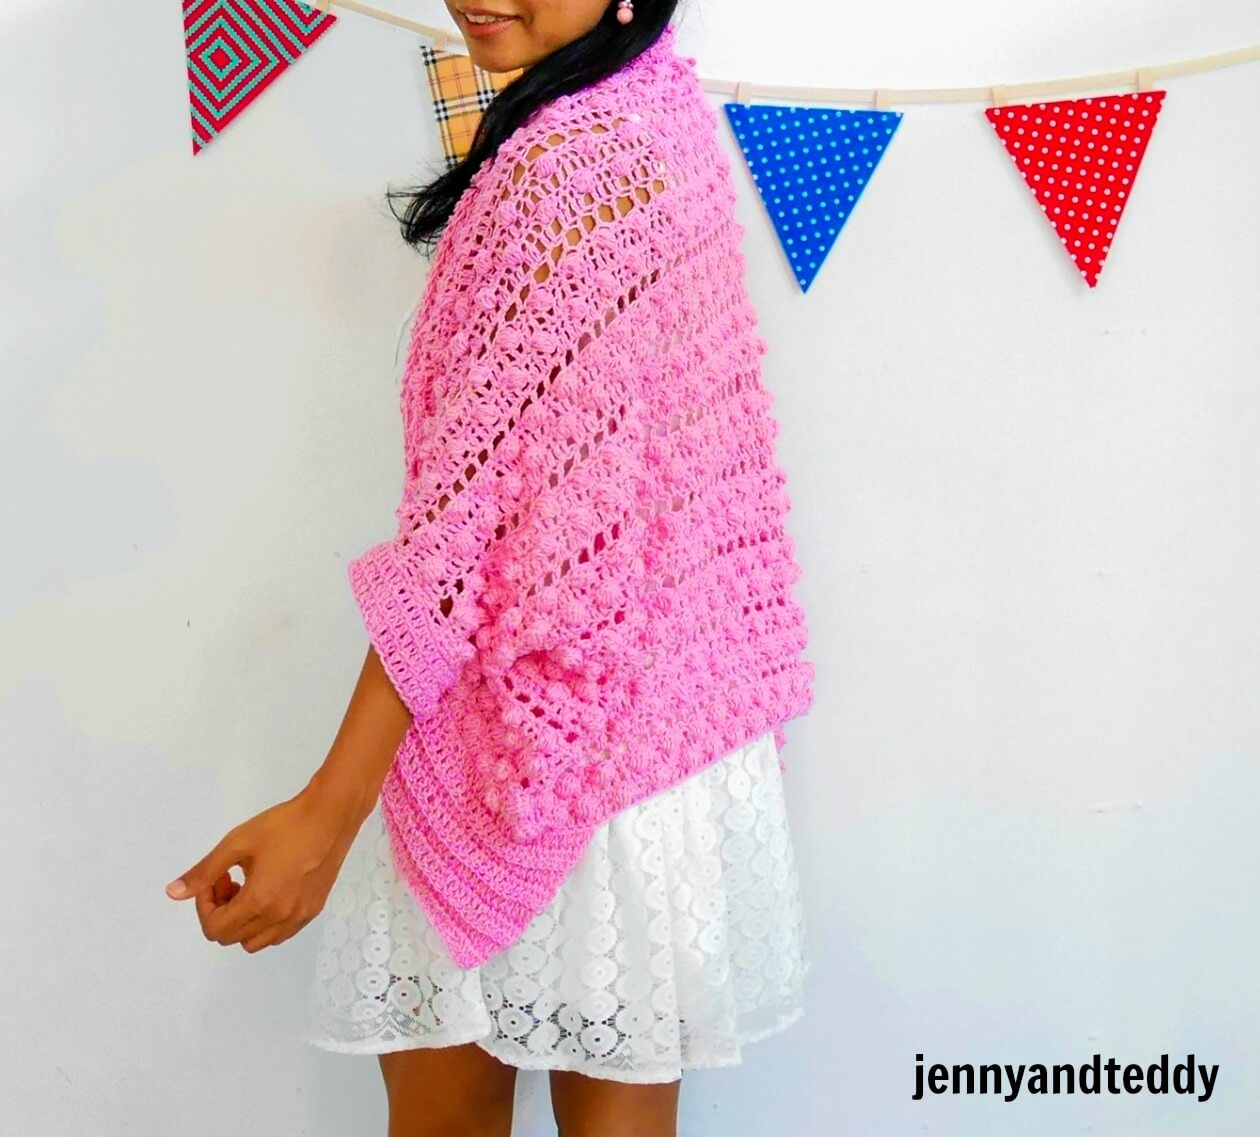 bobble crochet stitch cardigan made from cotton yarn